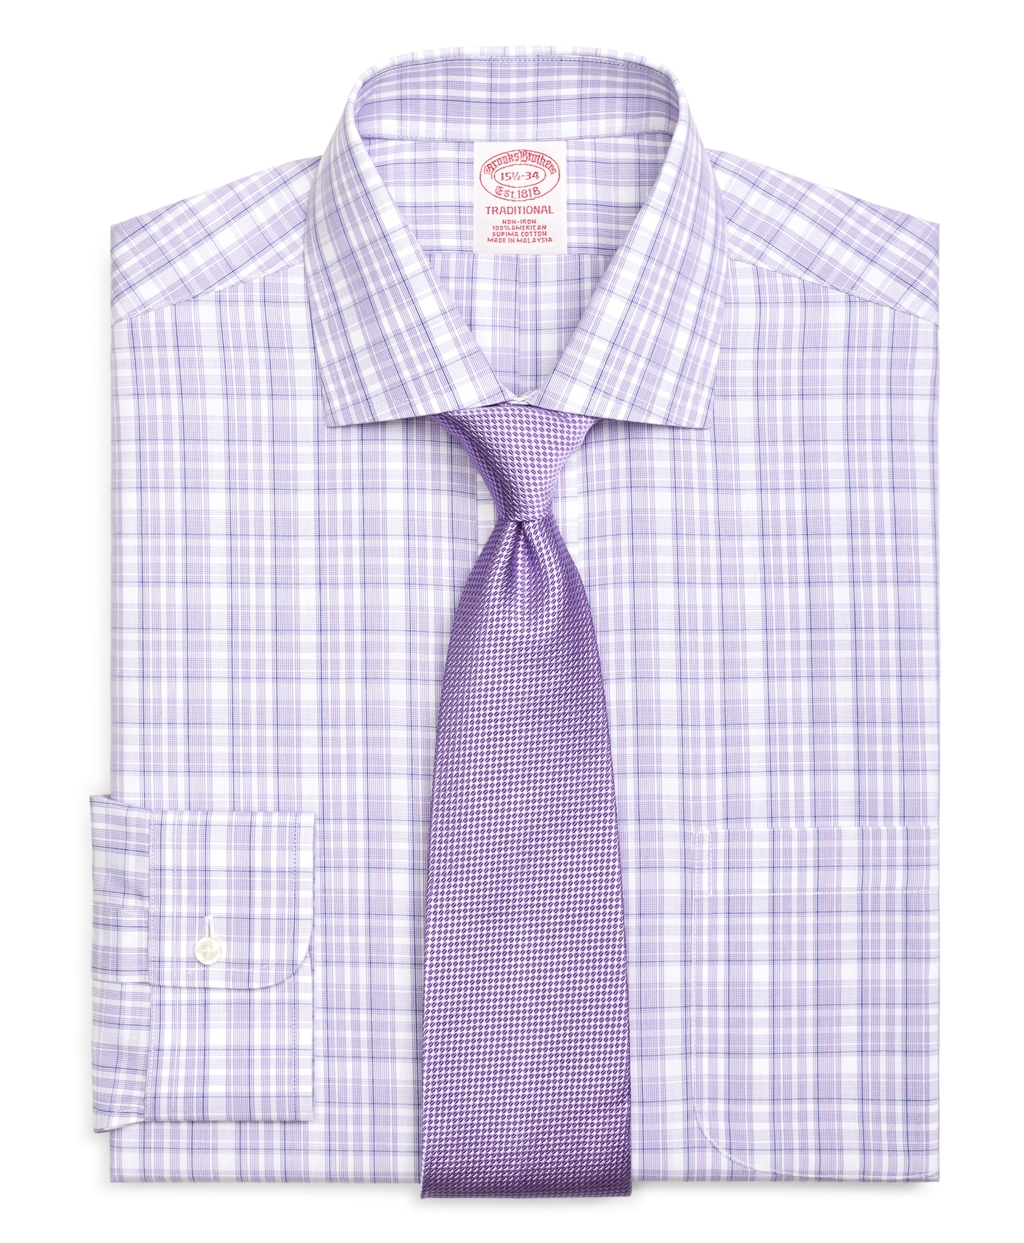 Lyst brooks brothers non iron madison fit sidewheeler for Brooks brothers non iron shirts review